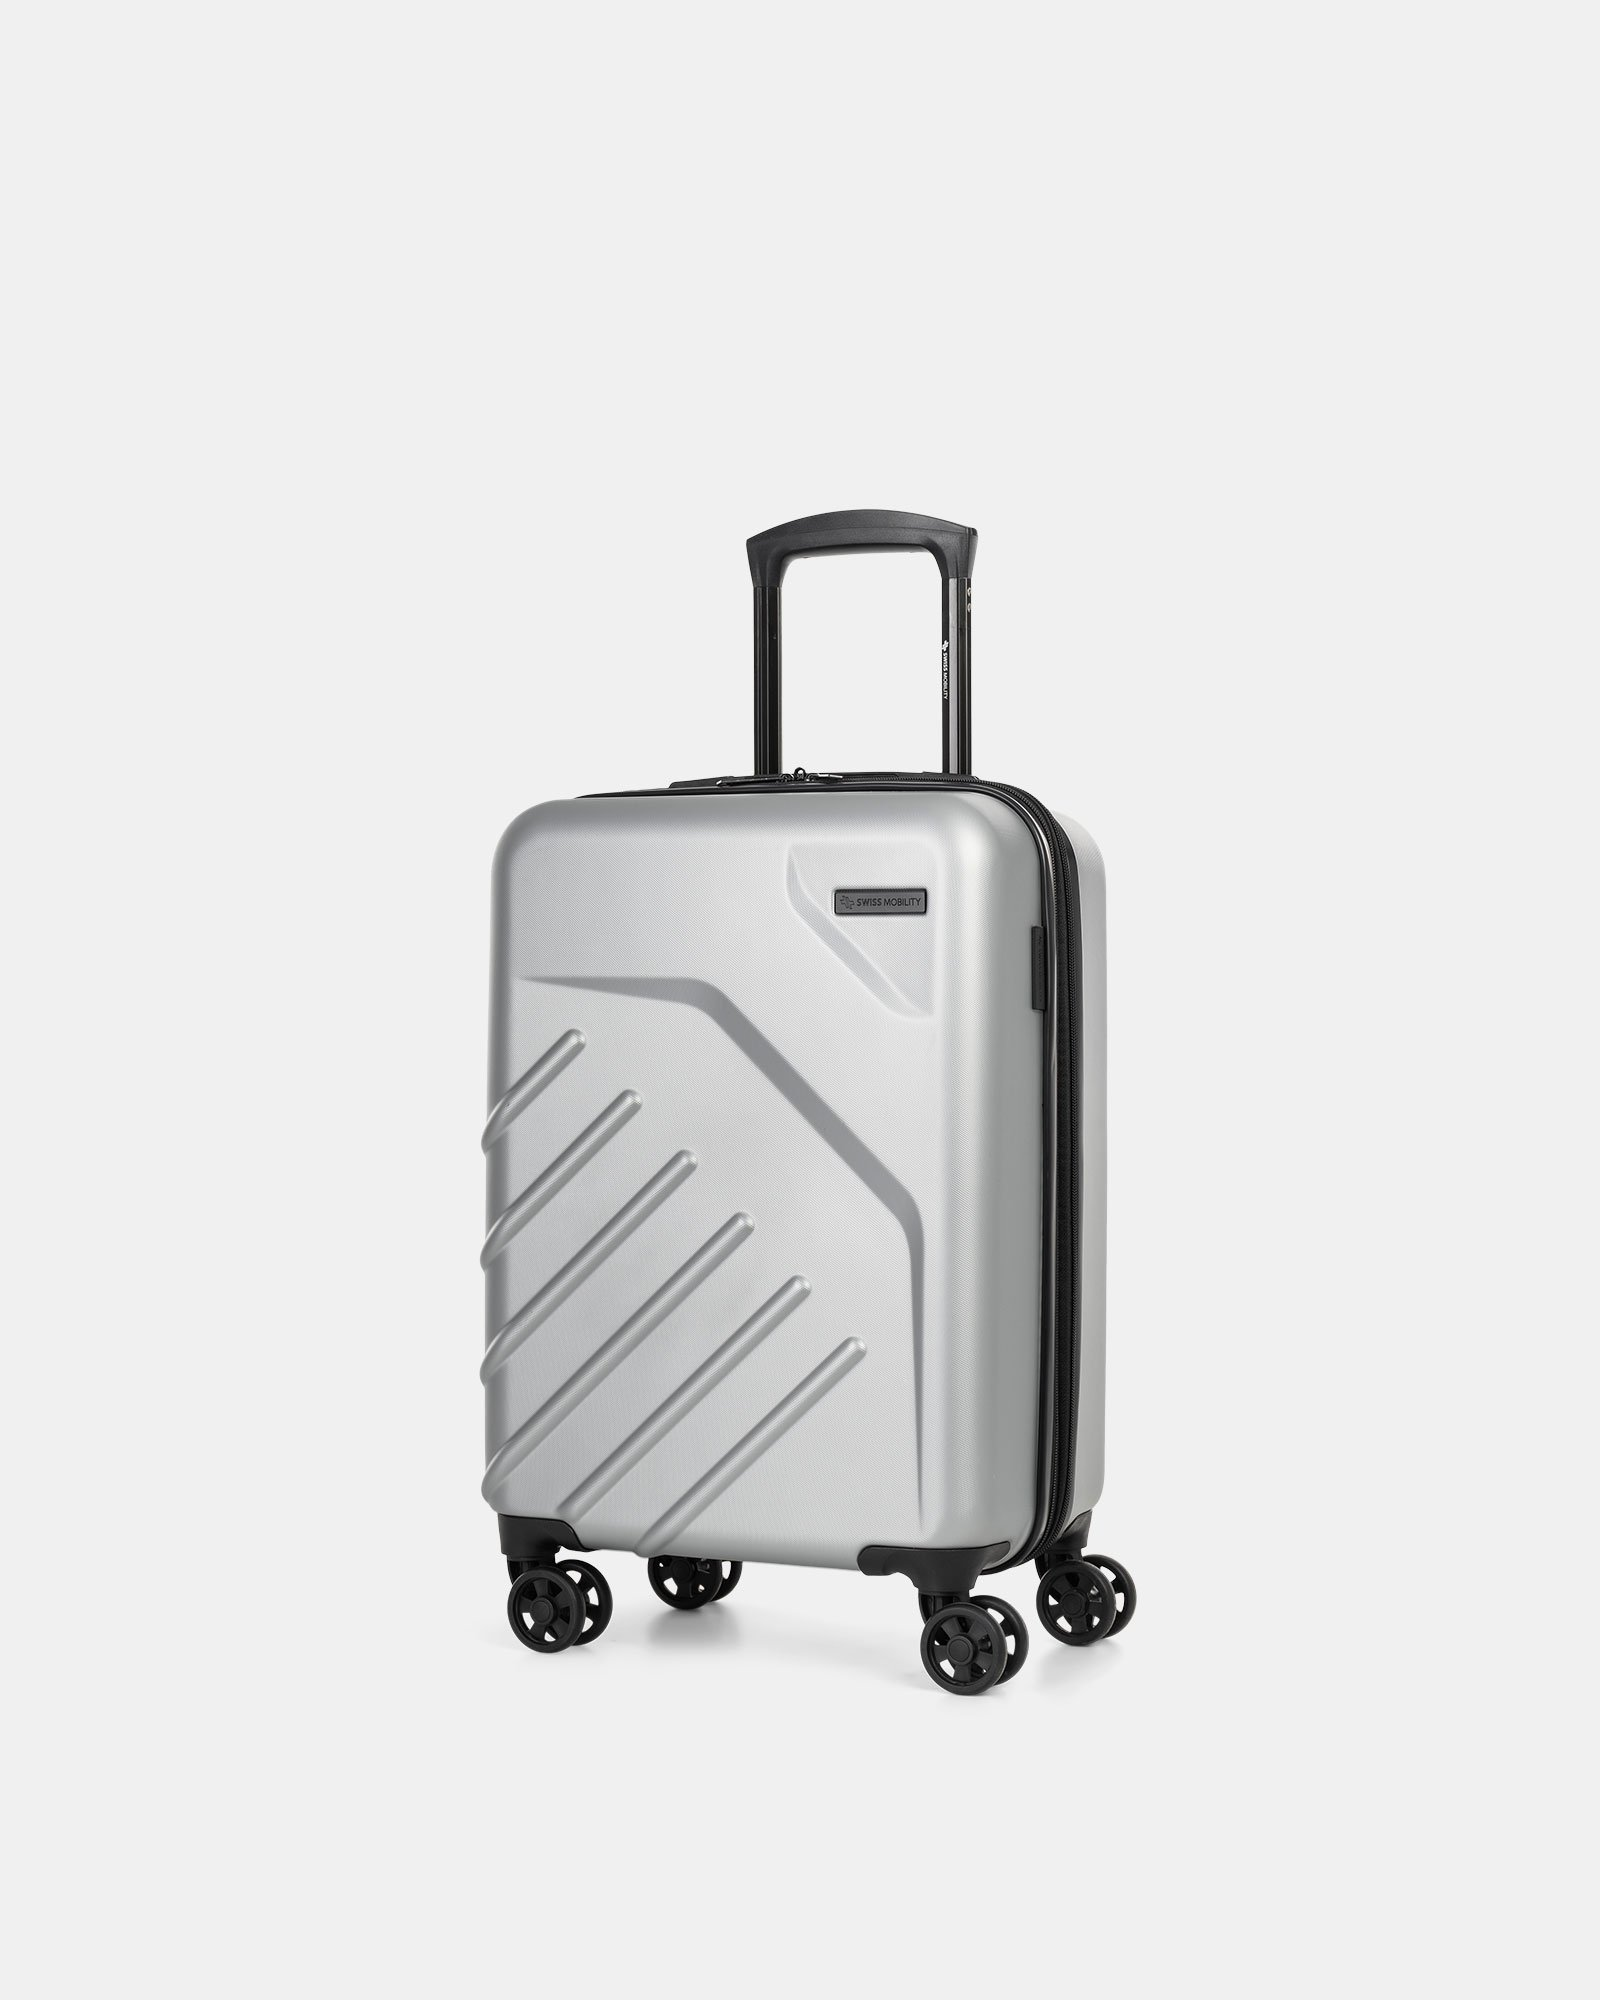 "LGA - 21.5"" LIGHTWEIGHT HARDSIDE CARRY-ON - SILVER - Swiss Mobility - Zoom"